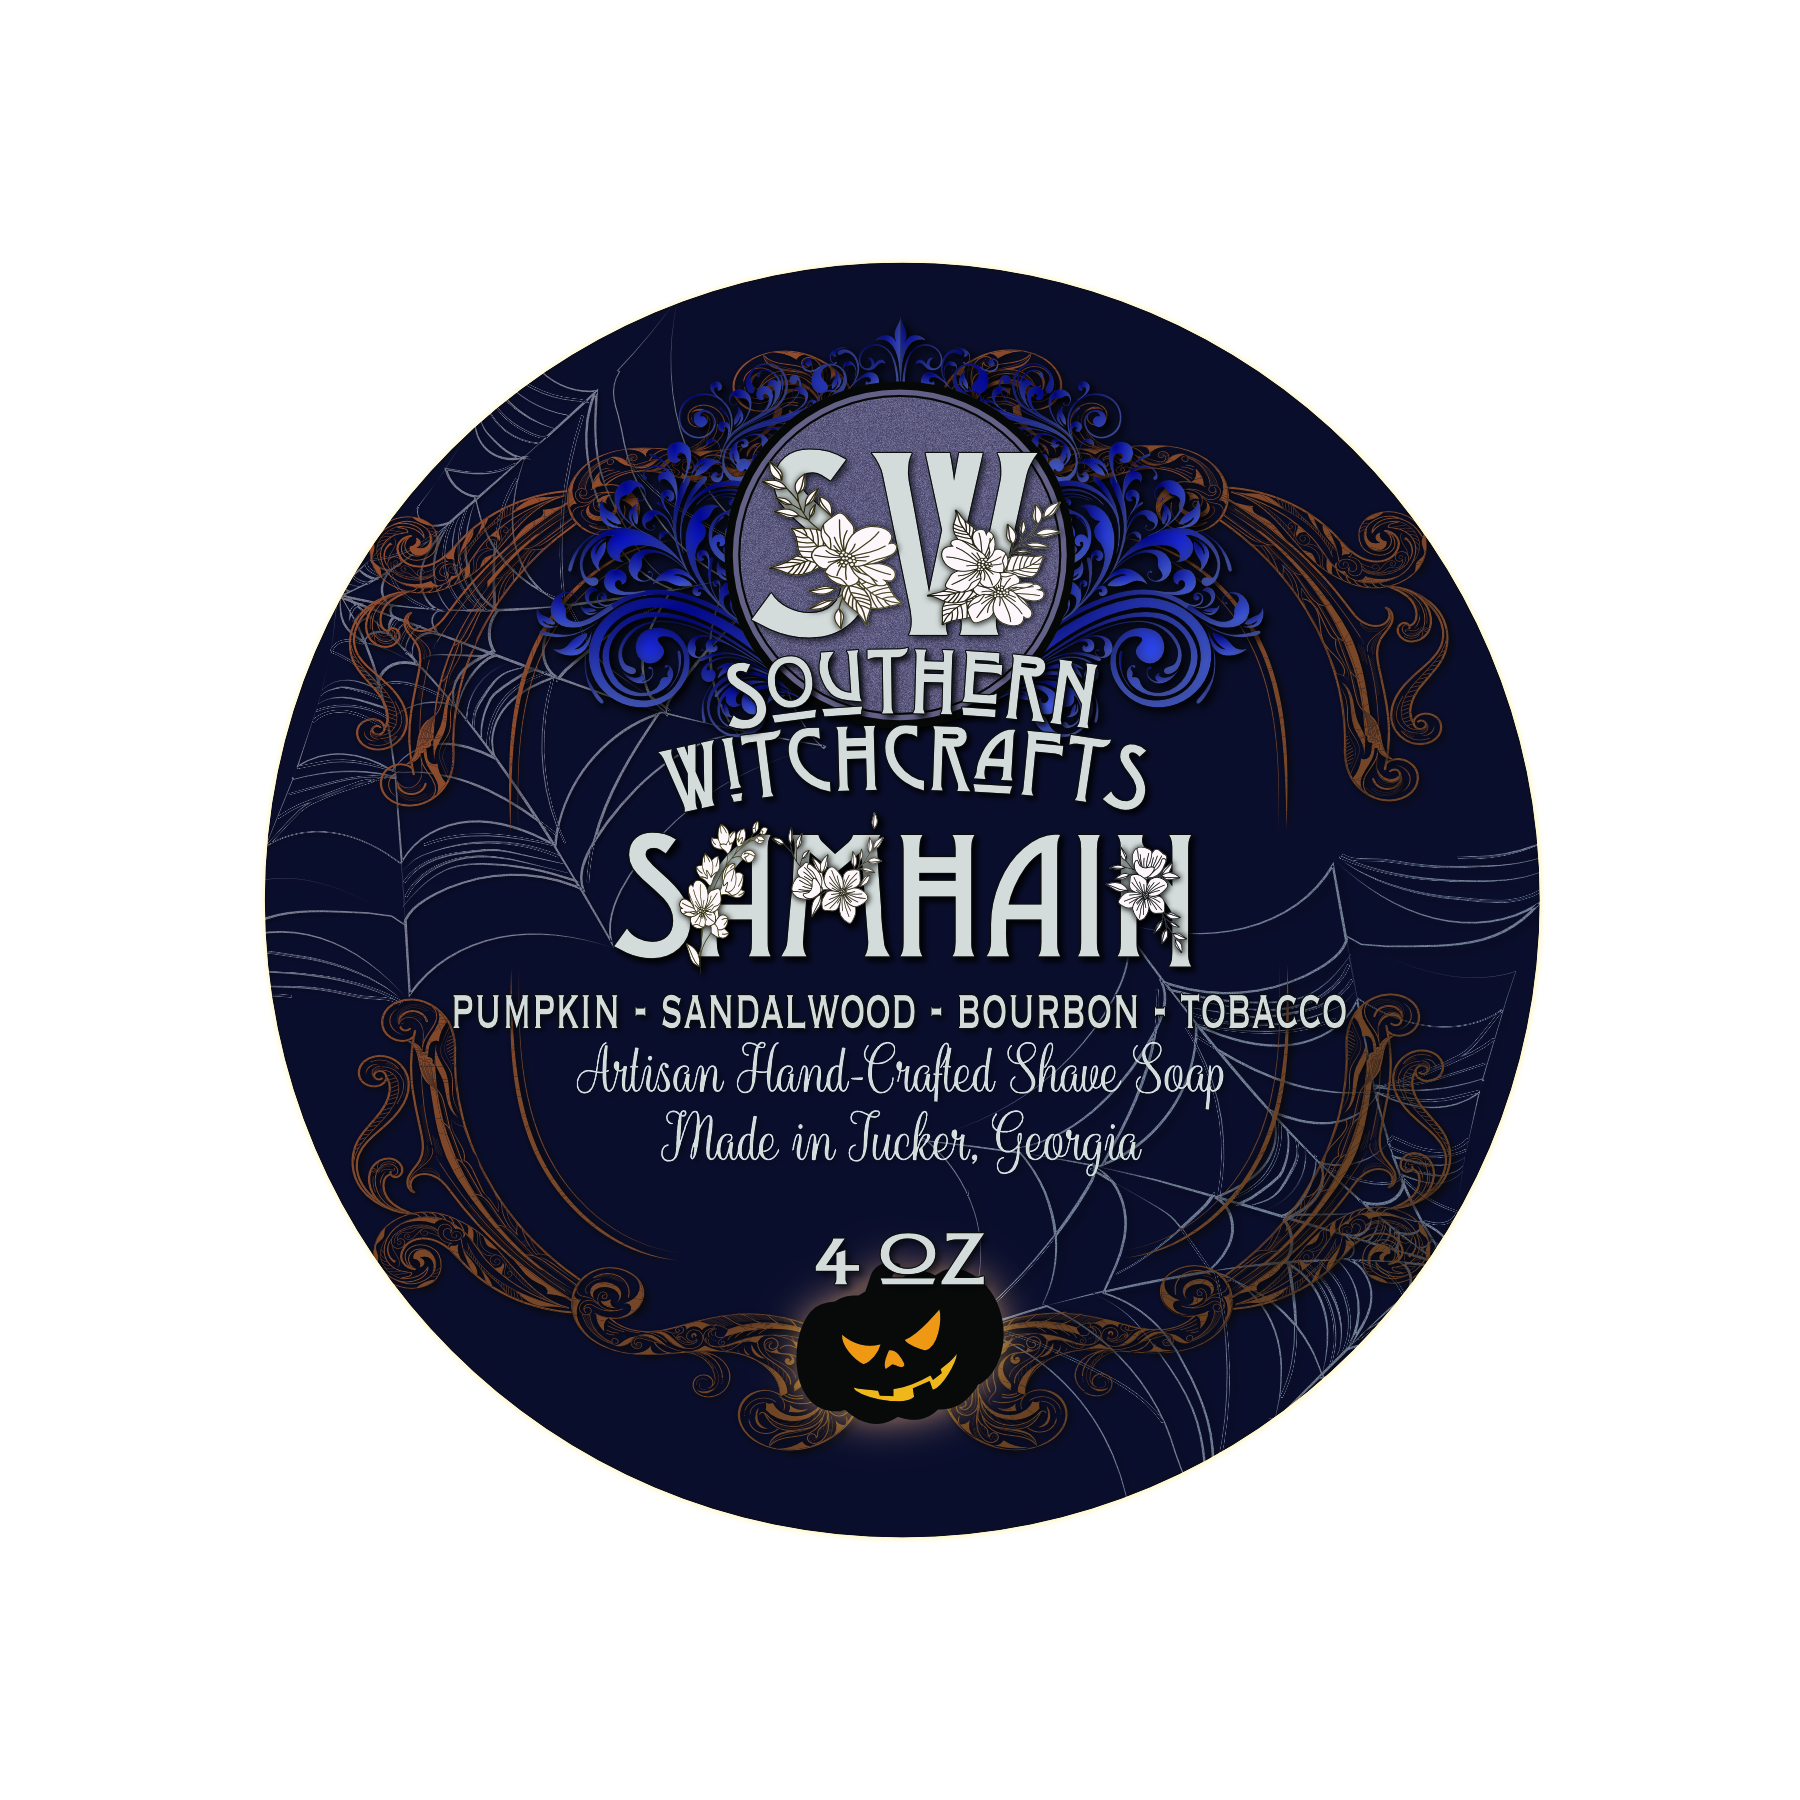 Southern Witchcrafts - Samhain - Soap image